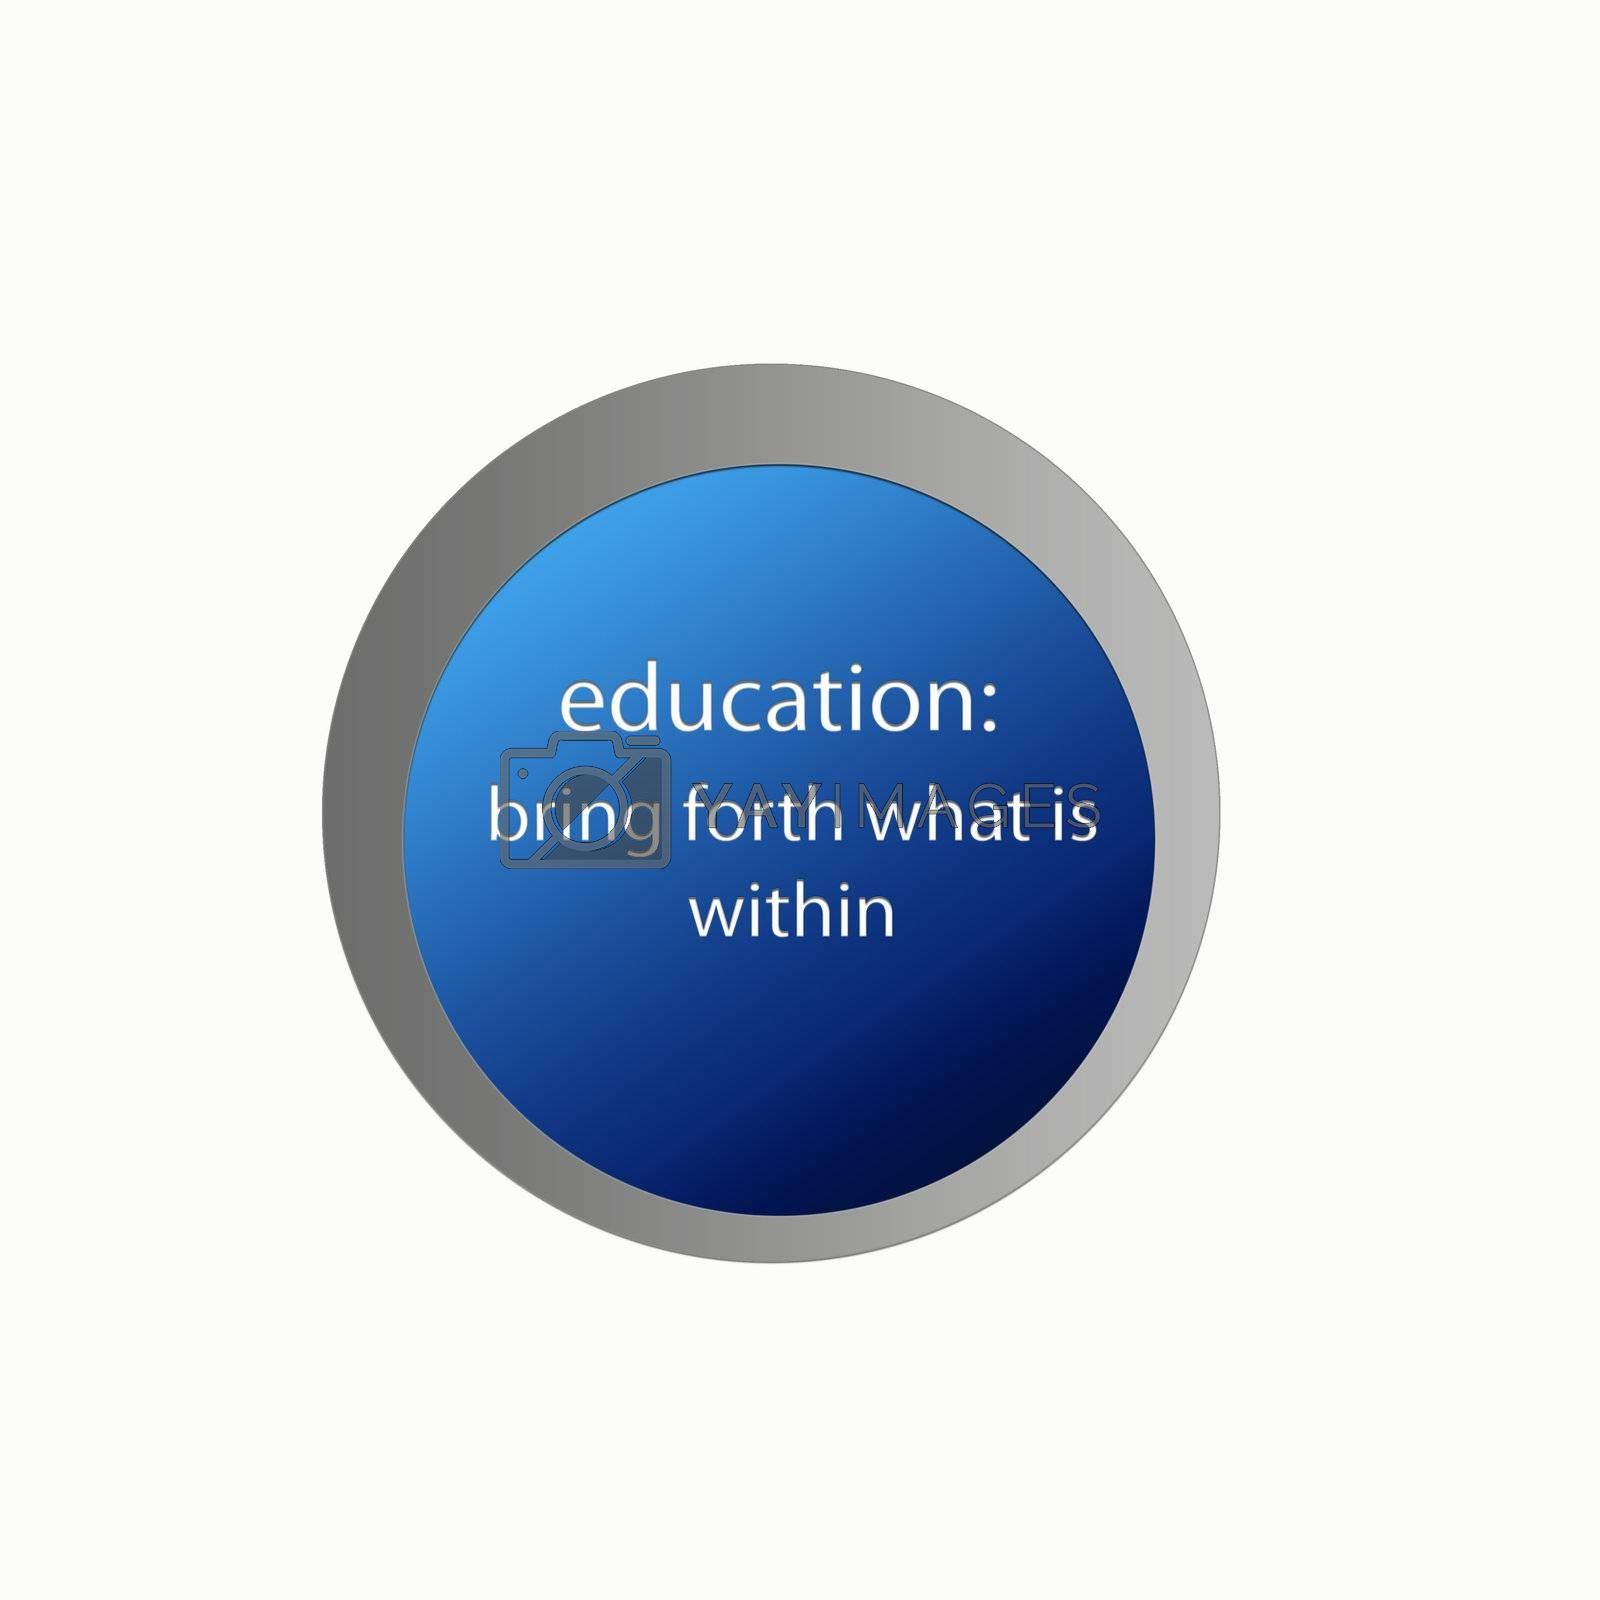 Button with education text embossed - illustration digital.